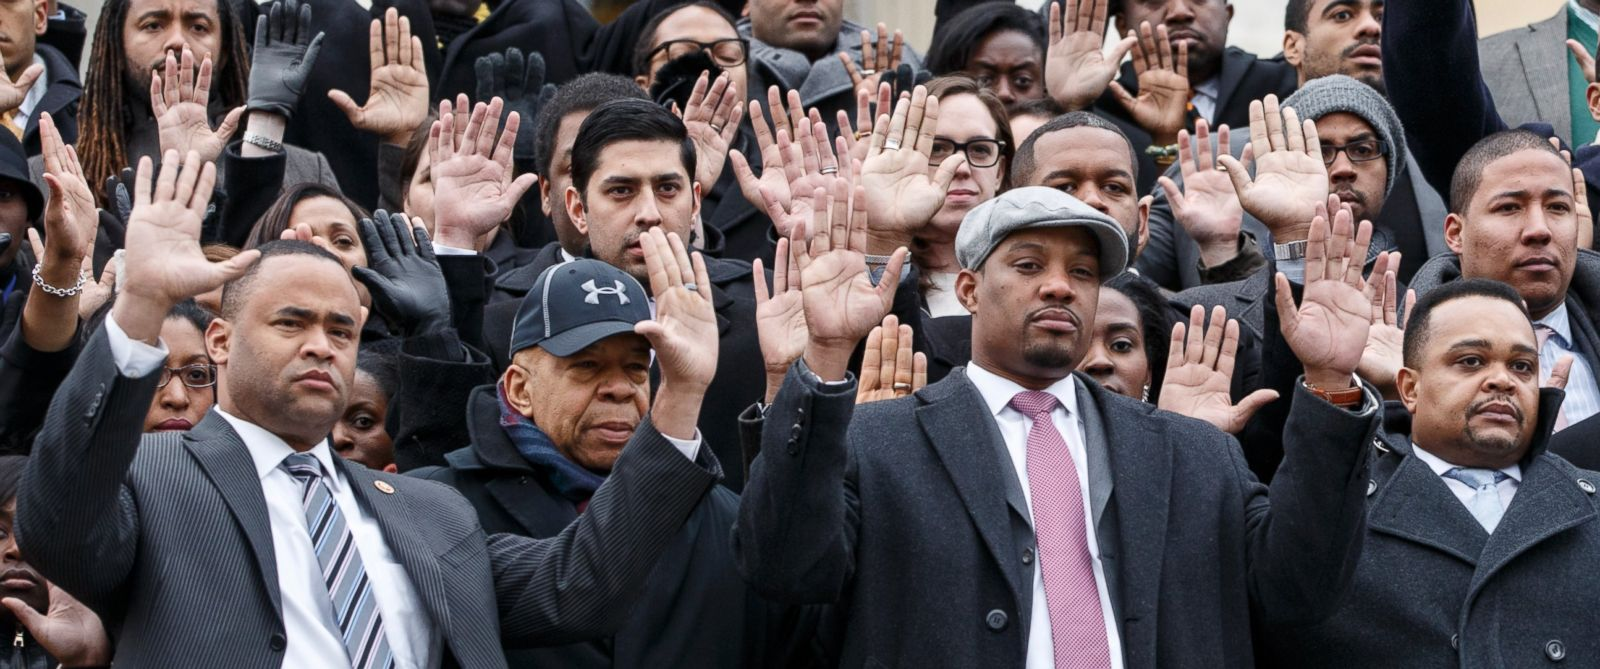 PHOTO: Congressional staff members gather on Capitol Hill in Washington on Dec. 11, 2014, to raise awareness of the recent killings of black men by police officers, both of which did not result in grand jury indictments.